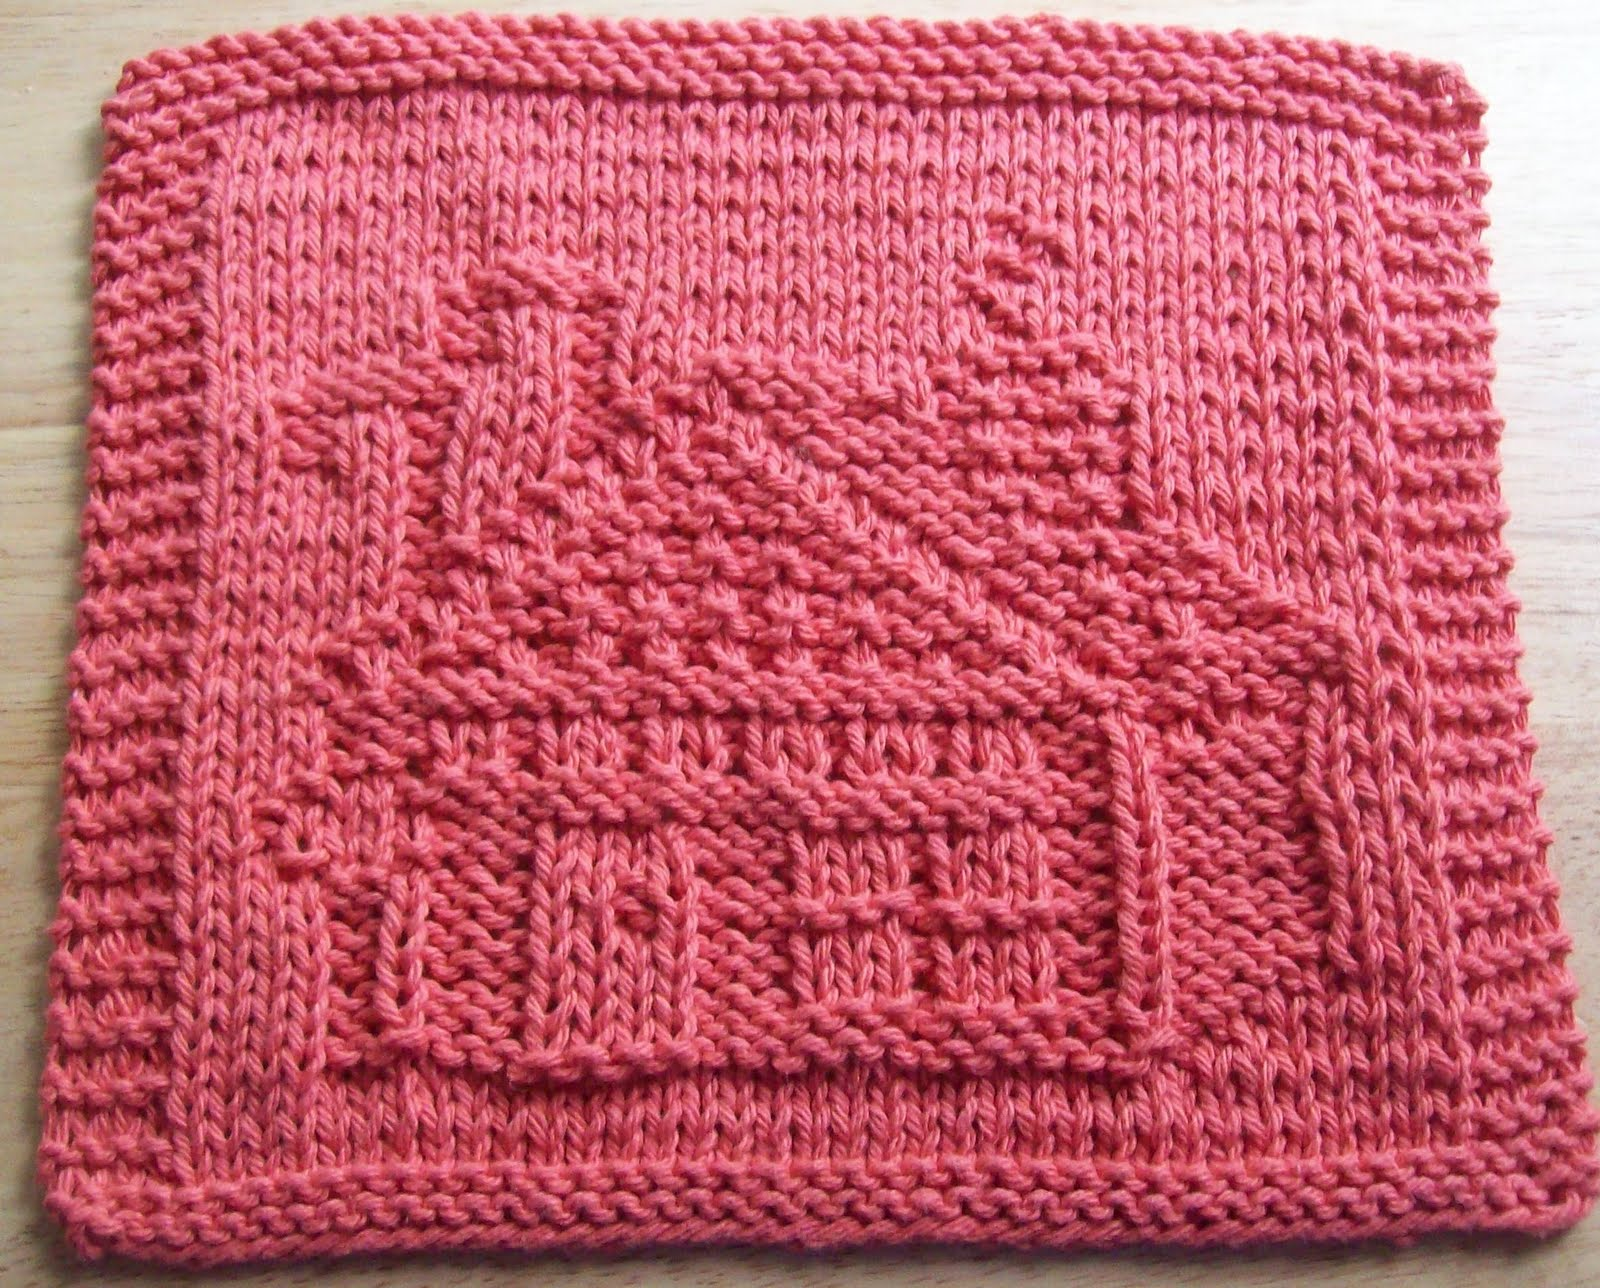 How To Knit Dishcloths Free Patterns : DigKnitty Designs: Gingerbread House Too Knit Dishcloth ...